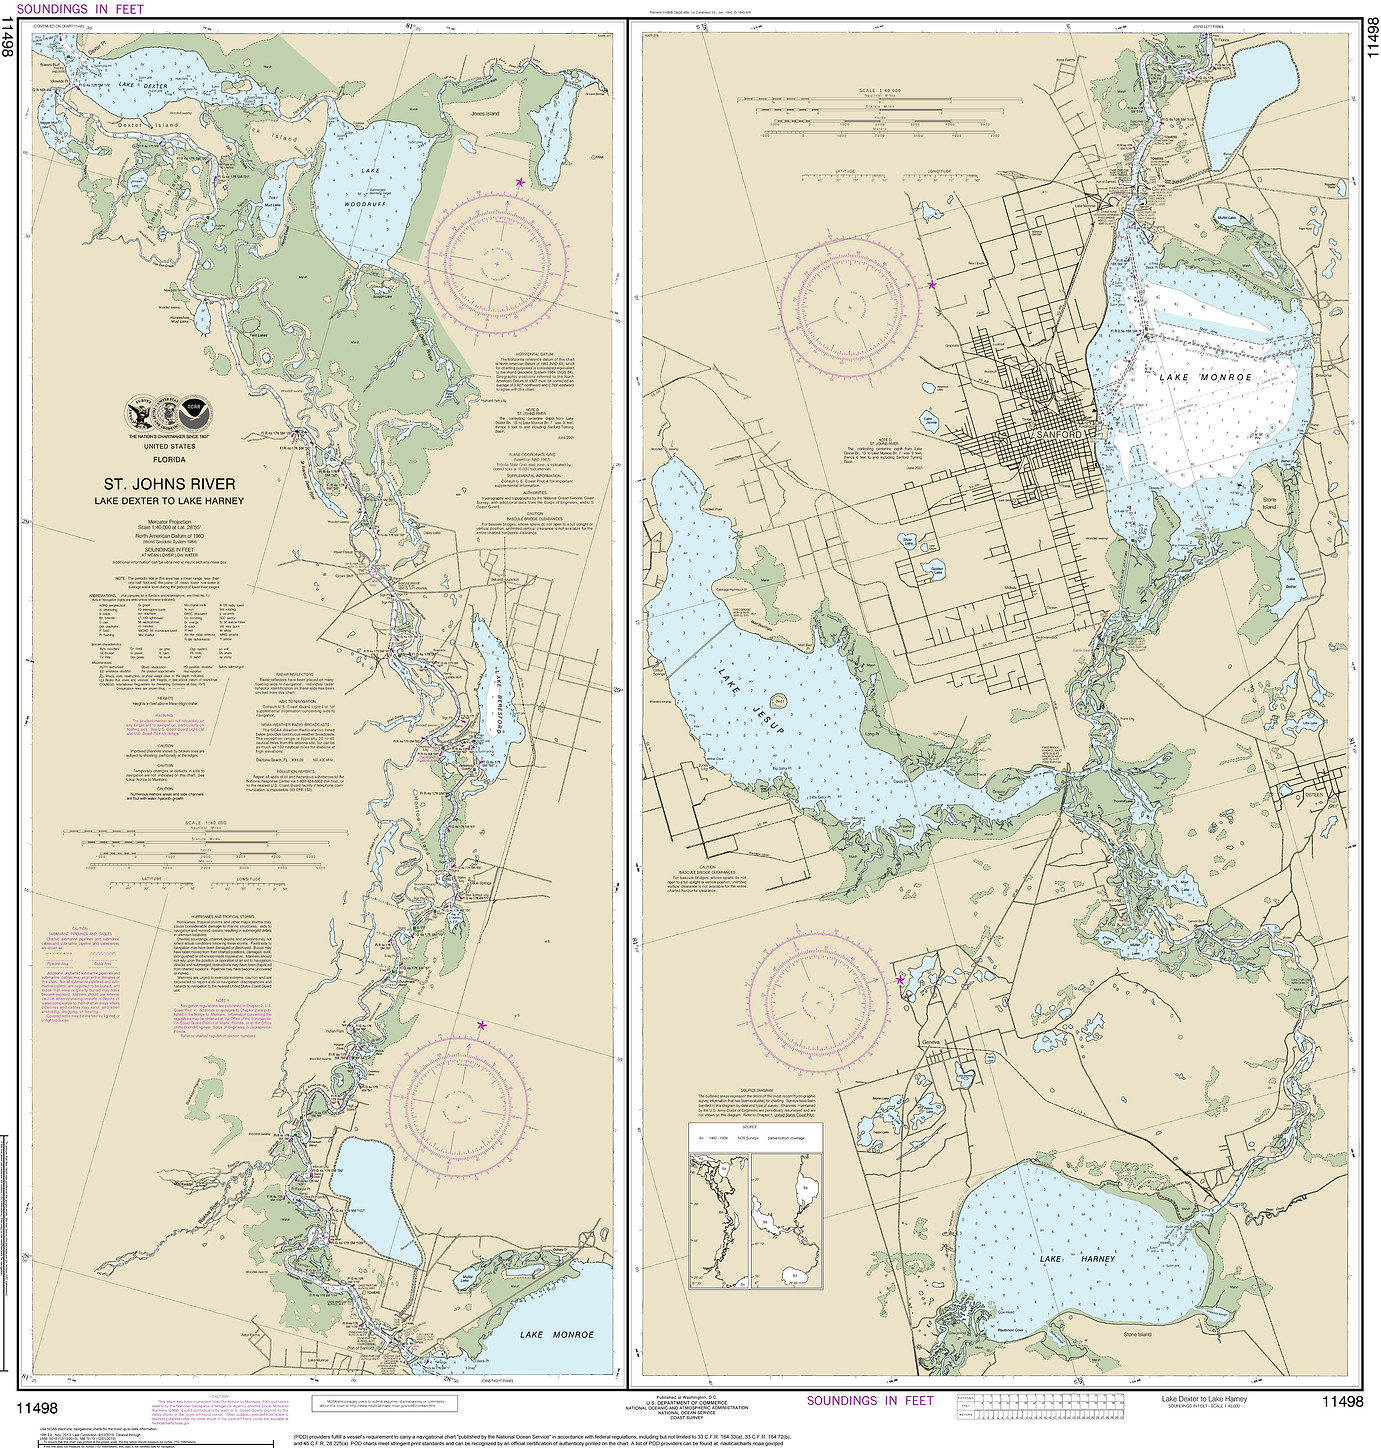 St. Johns River Navigational Map 11498-1